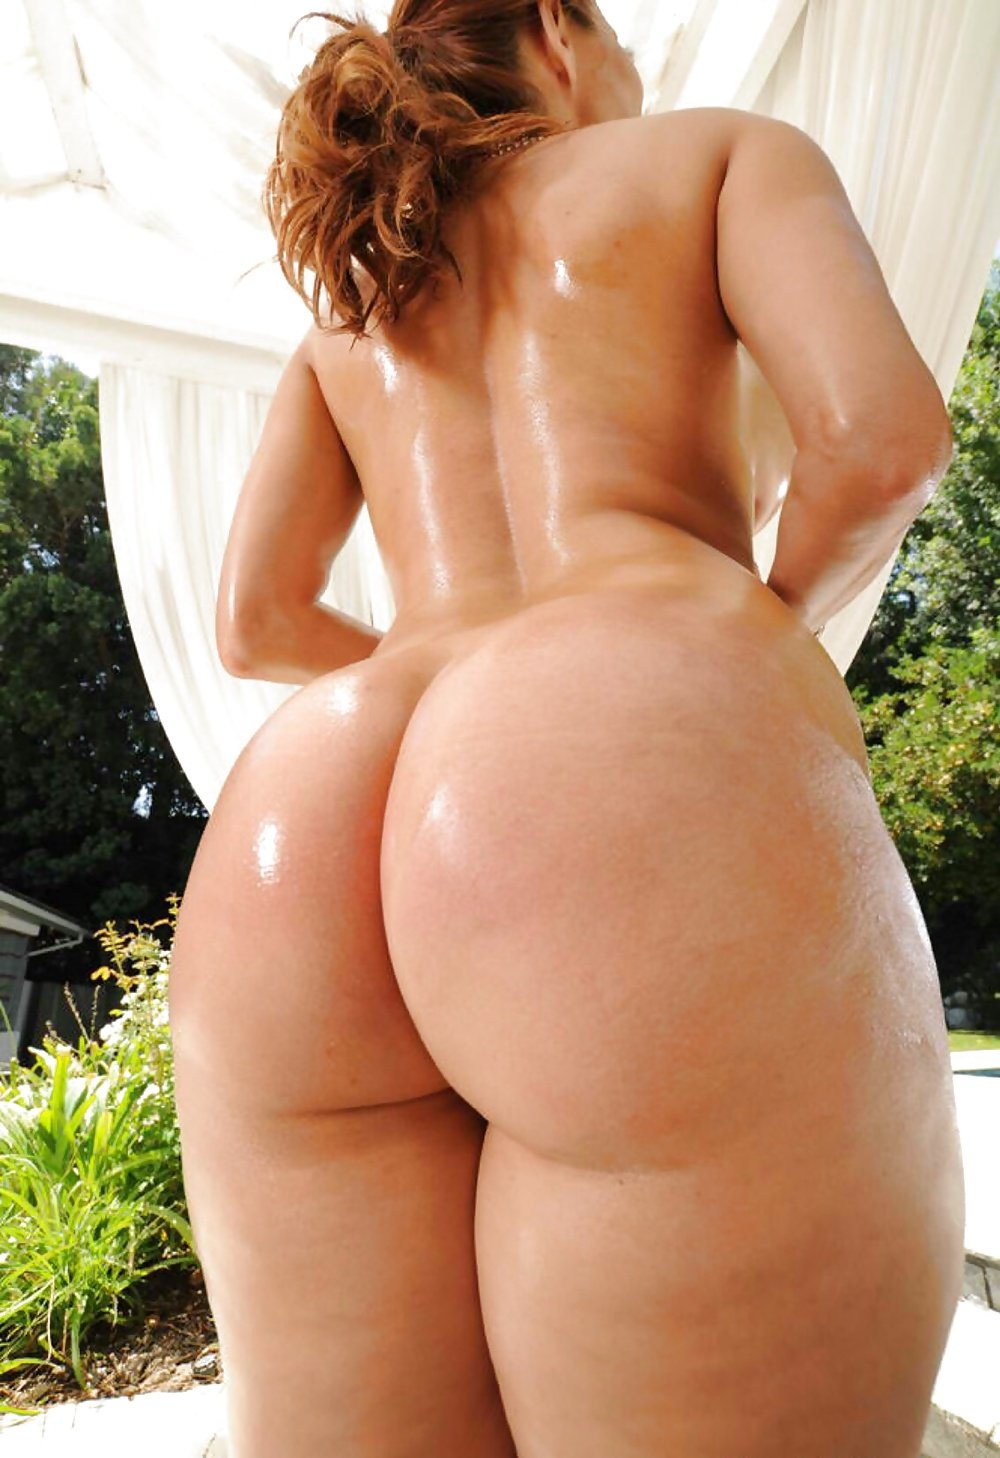 Big boobs and booty queen latina mspalomares